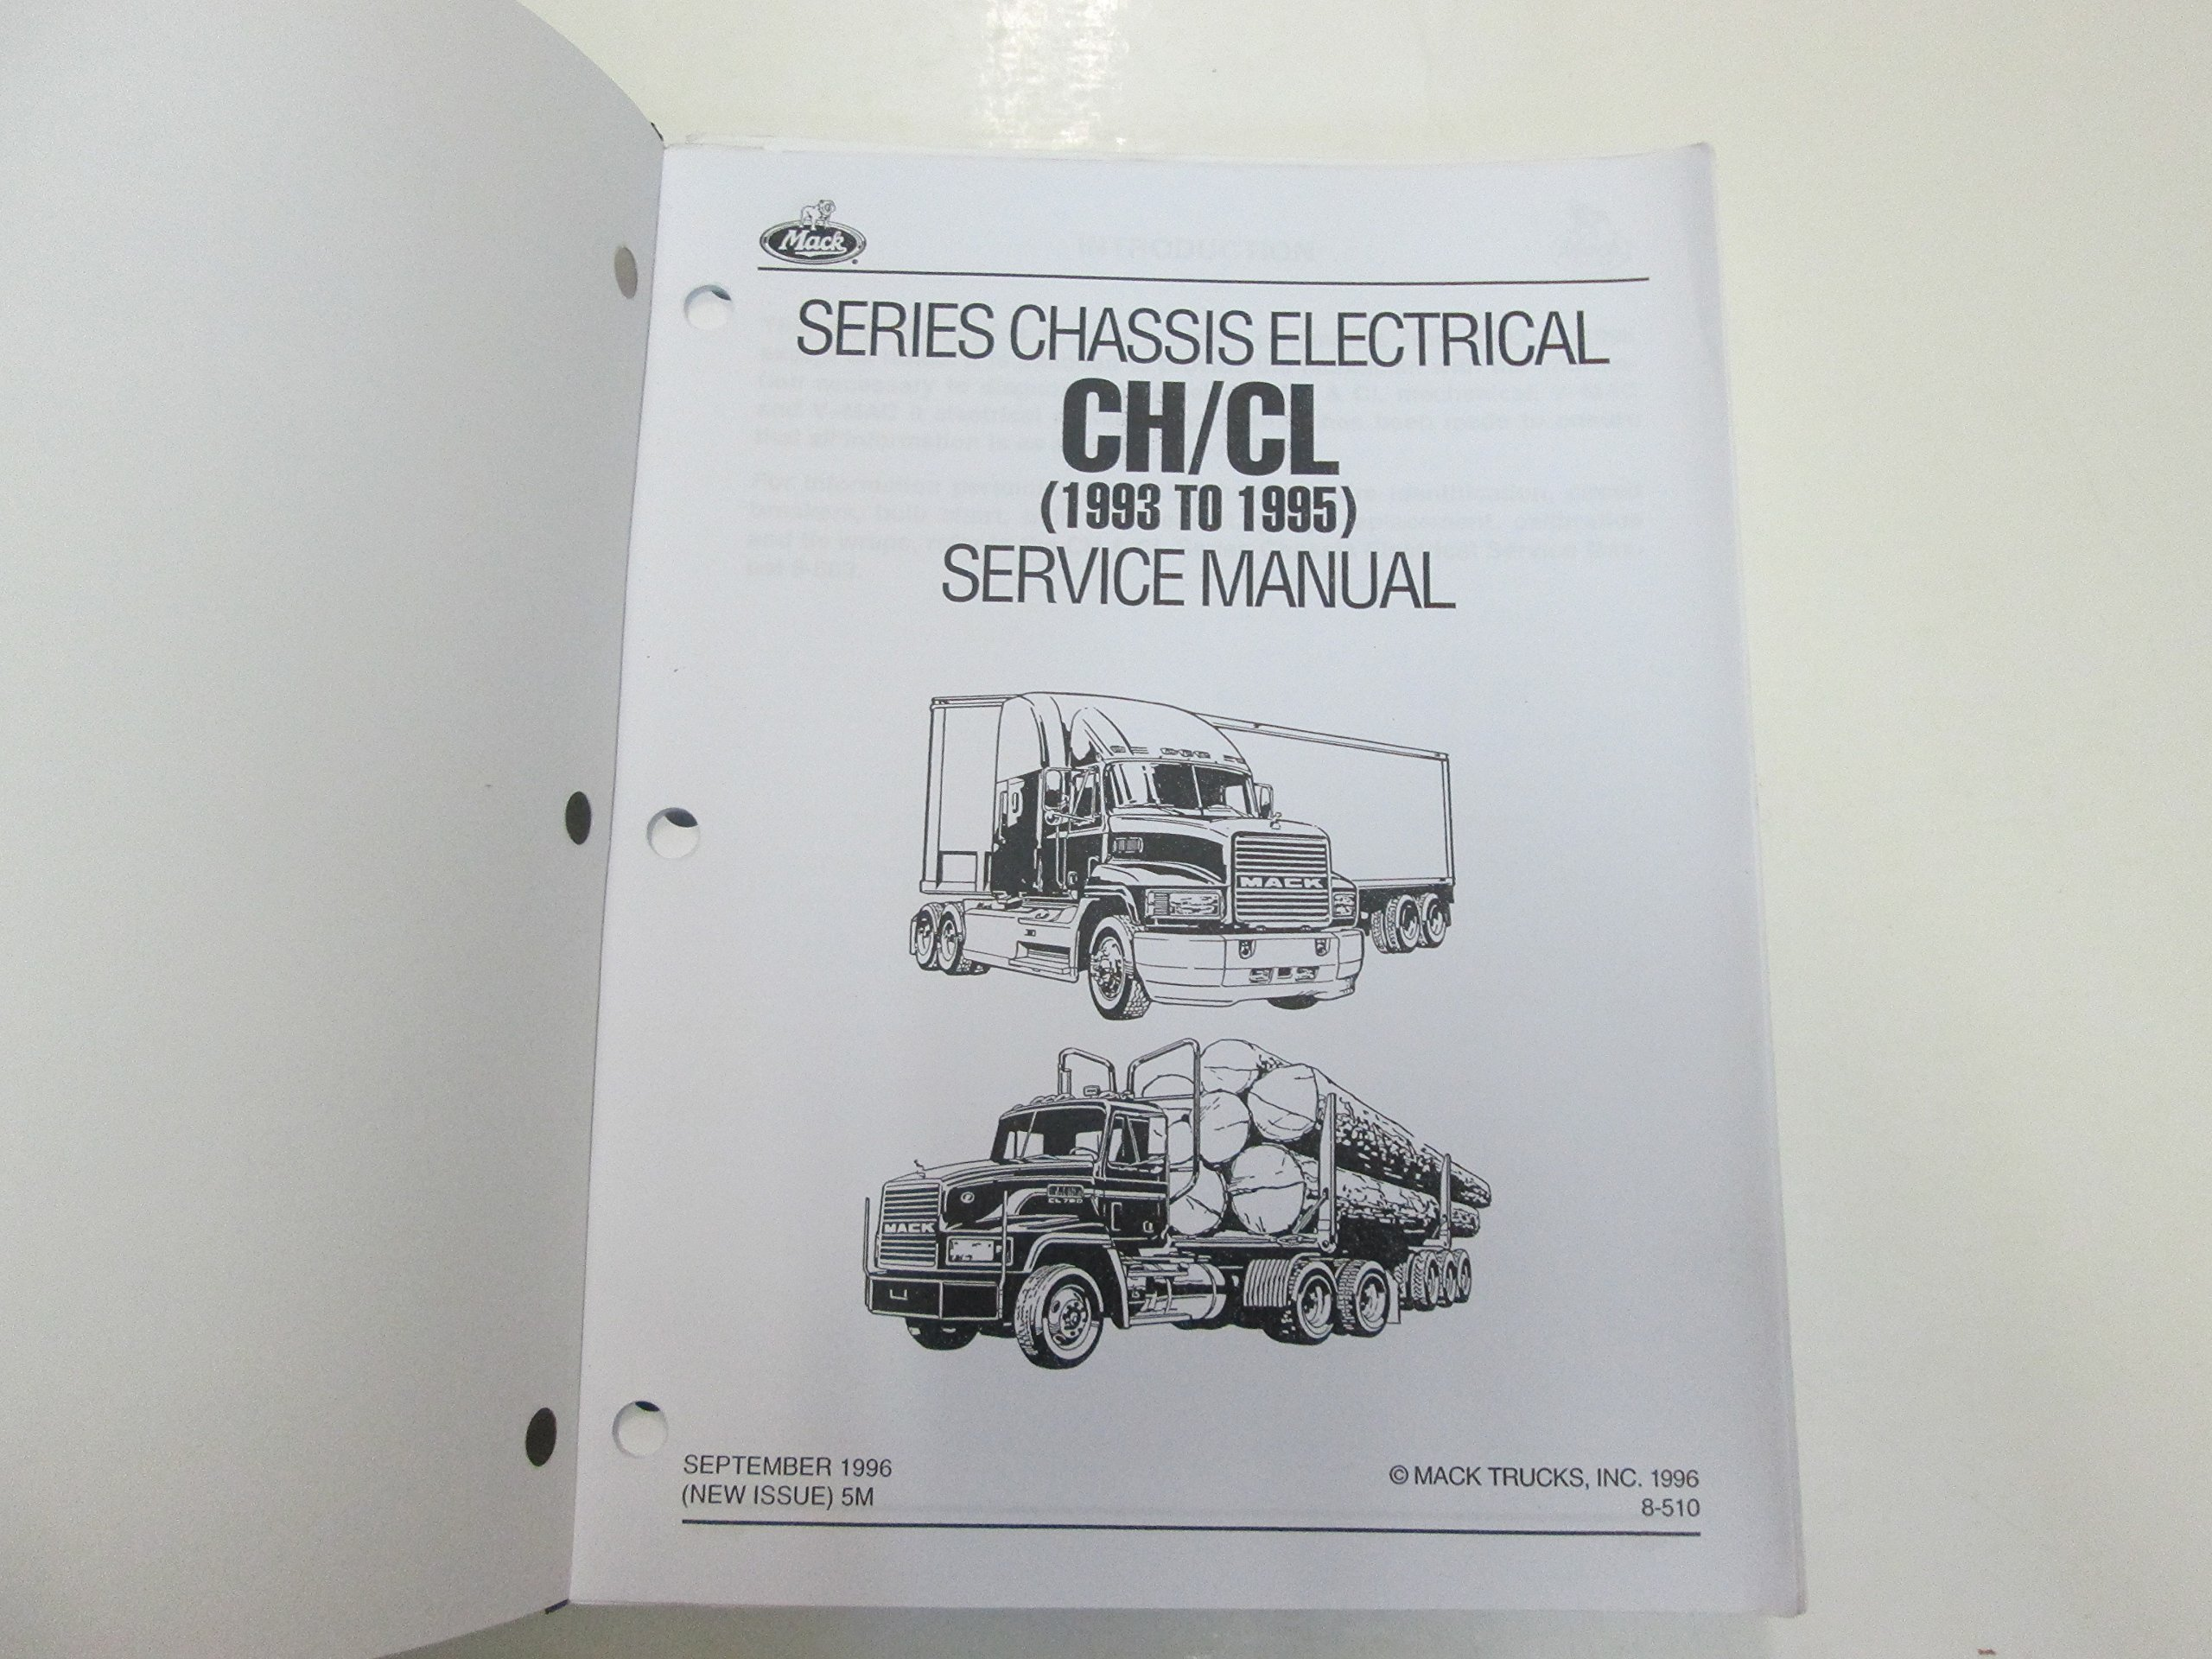 1993 to 1995 Mack Trucks CH CL Series Chis Electrical Service ... Mack Wiring Diagram For on mack transmission diagram, mack fuel system diagram, mack parts diagram, mack rear end diagram, mack relay diagram, mack hvac diagram, mack pump diagram, mack steering diagram, mack engine diagram, mack suspension, mack fuse diagram, mack motor diagram,